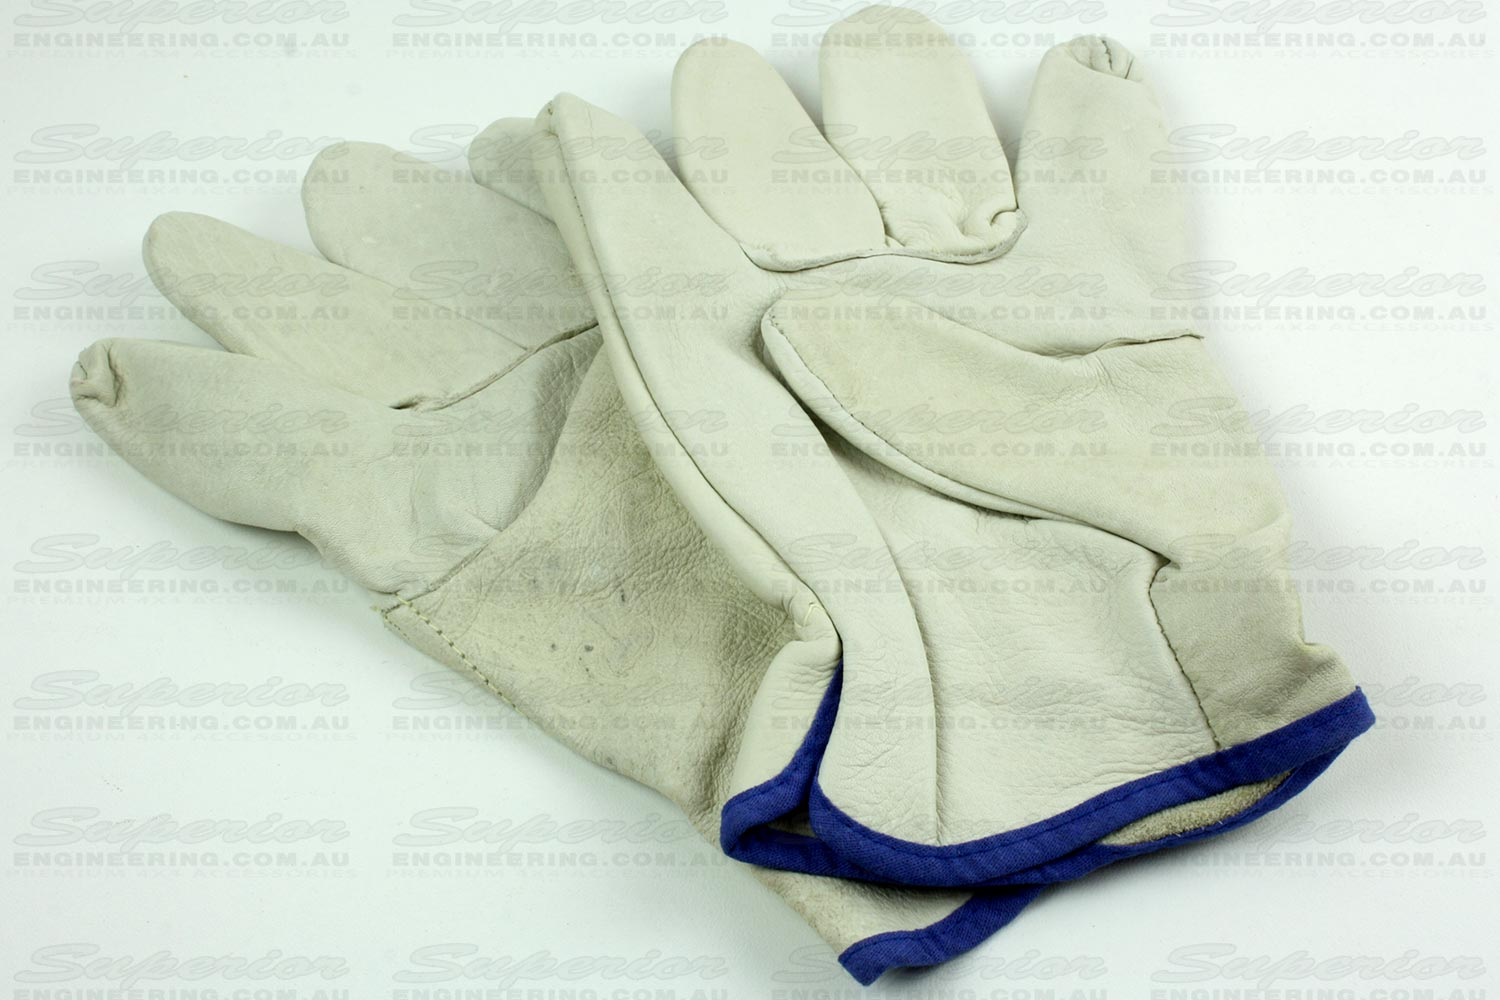 Pair of leather safety gloves that come standard in the T-Max kit